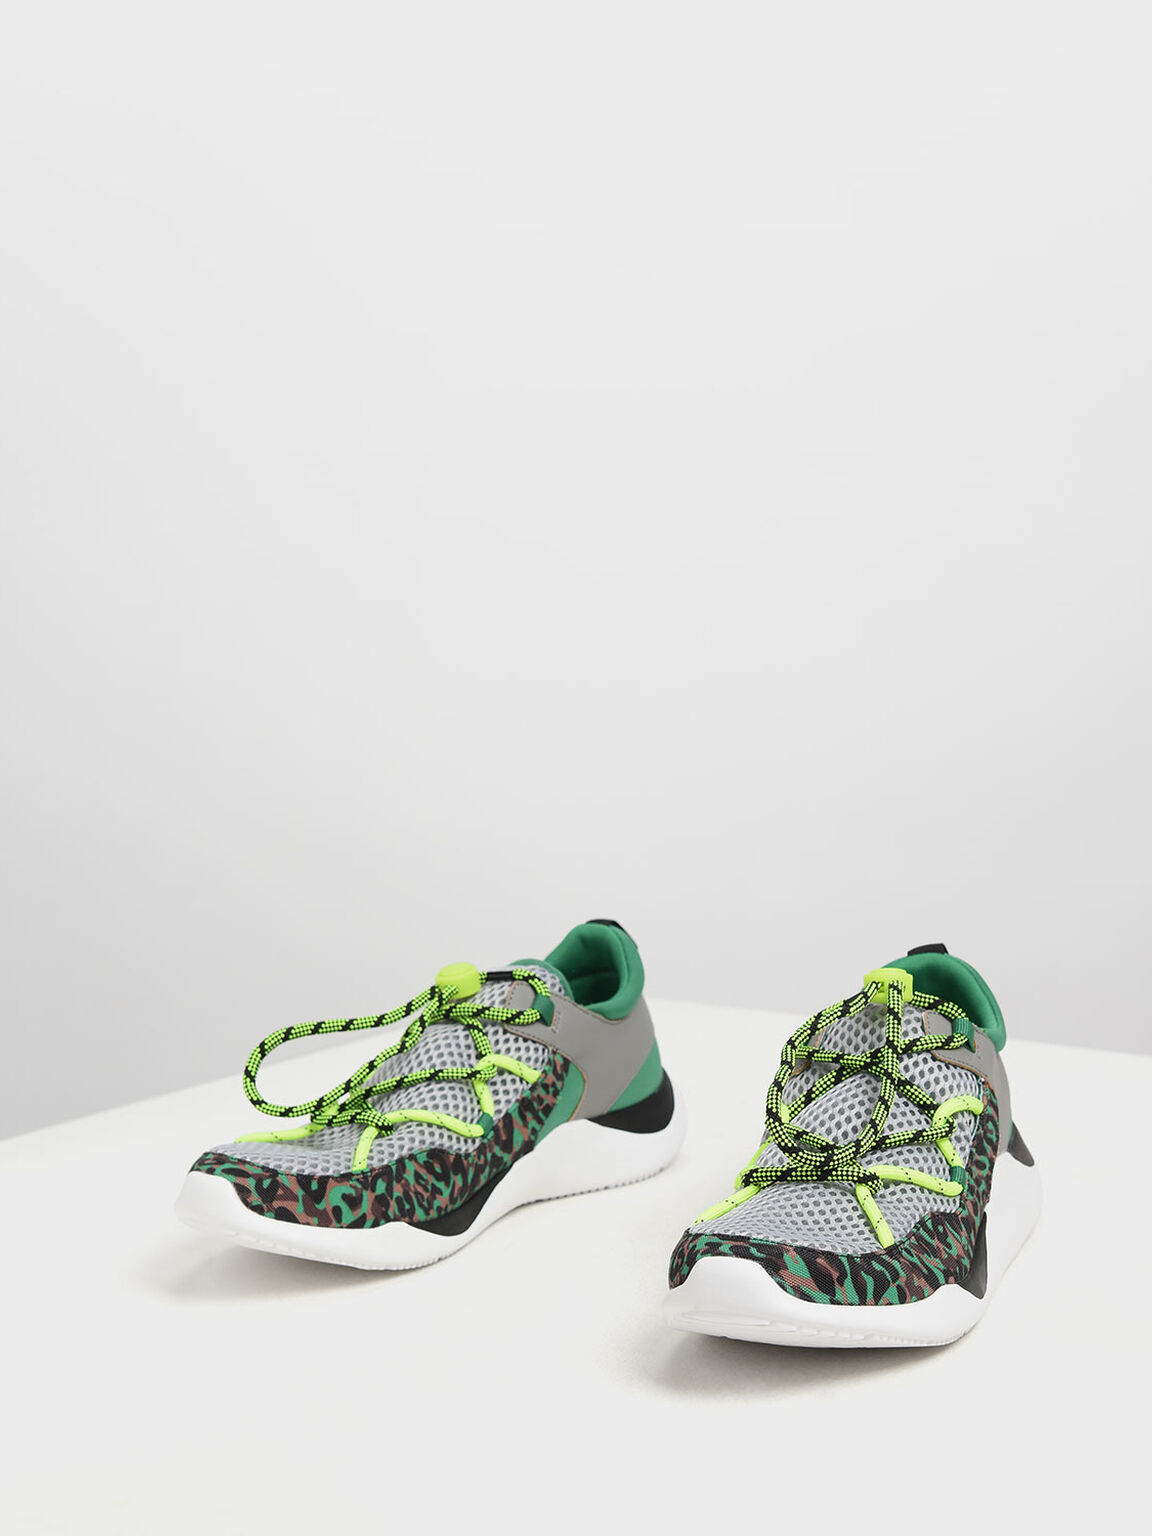 Drawstring Mesh Sneakers, Green, hi-res